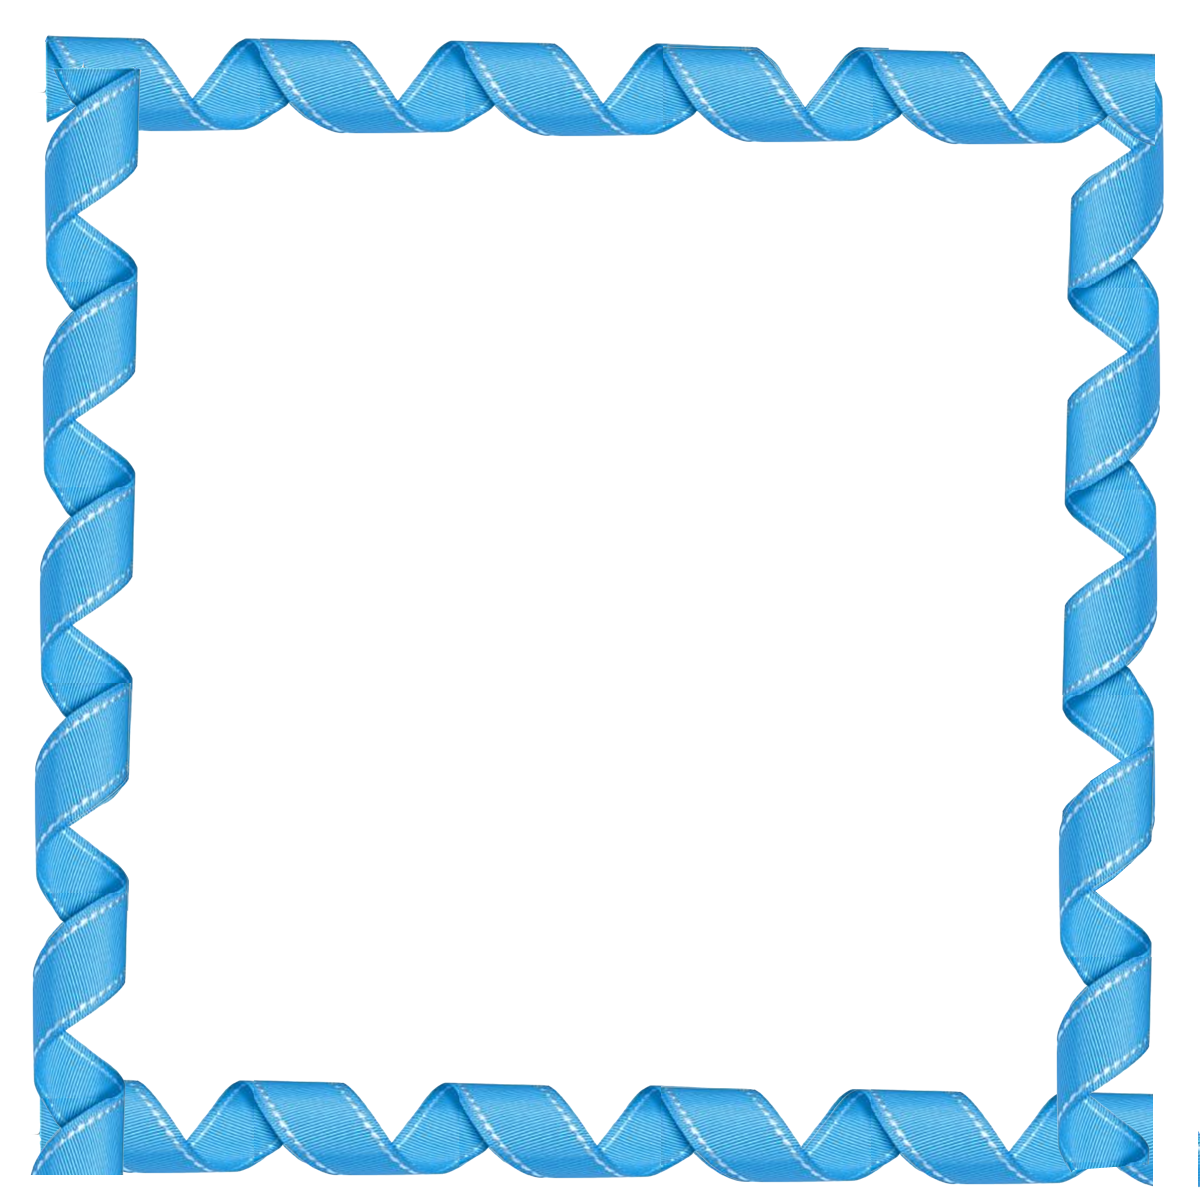 Free scrapbooking frames free digital scrapbook elements free free scrapbooking frames free digital scrapbook elements free blue curly frame digi scrapbook jeuxipadfo Choice Image